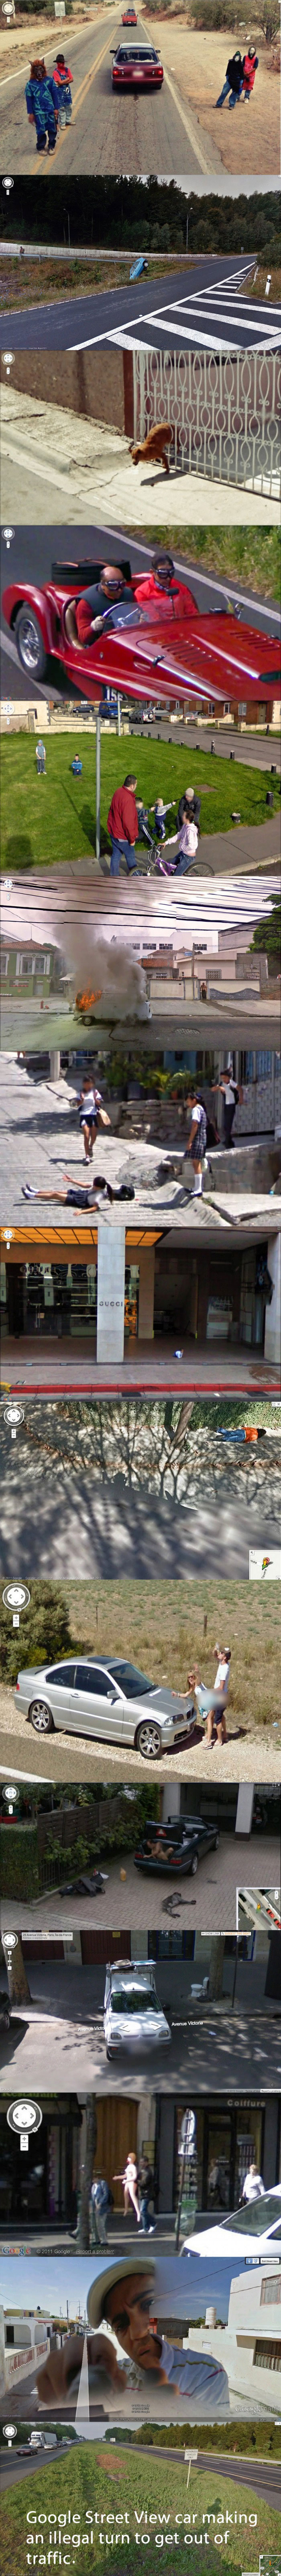 google street view, wtf, caught